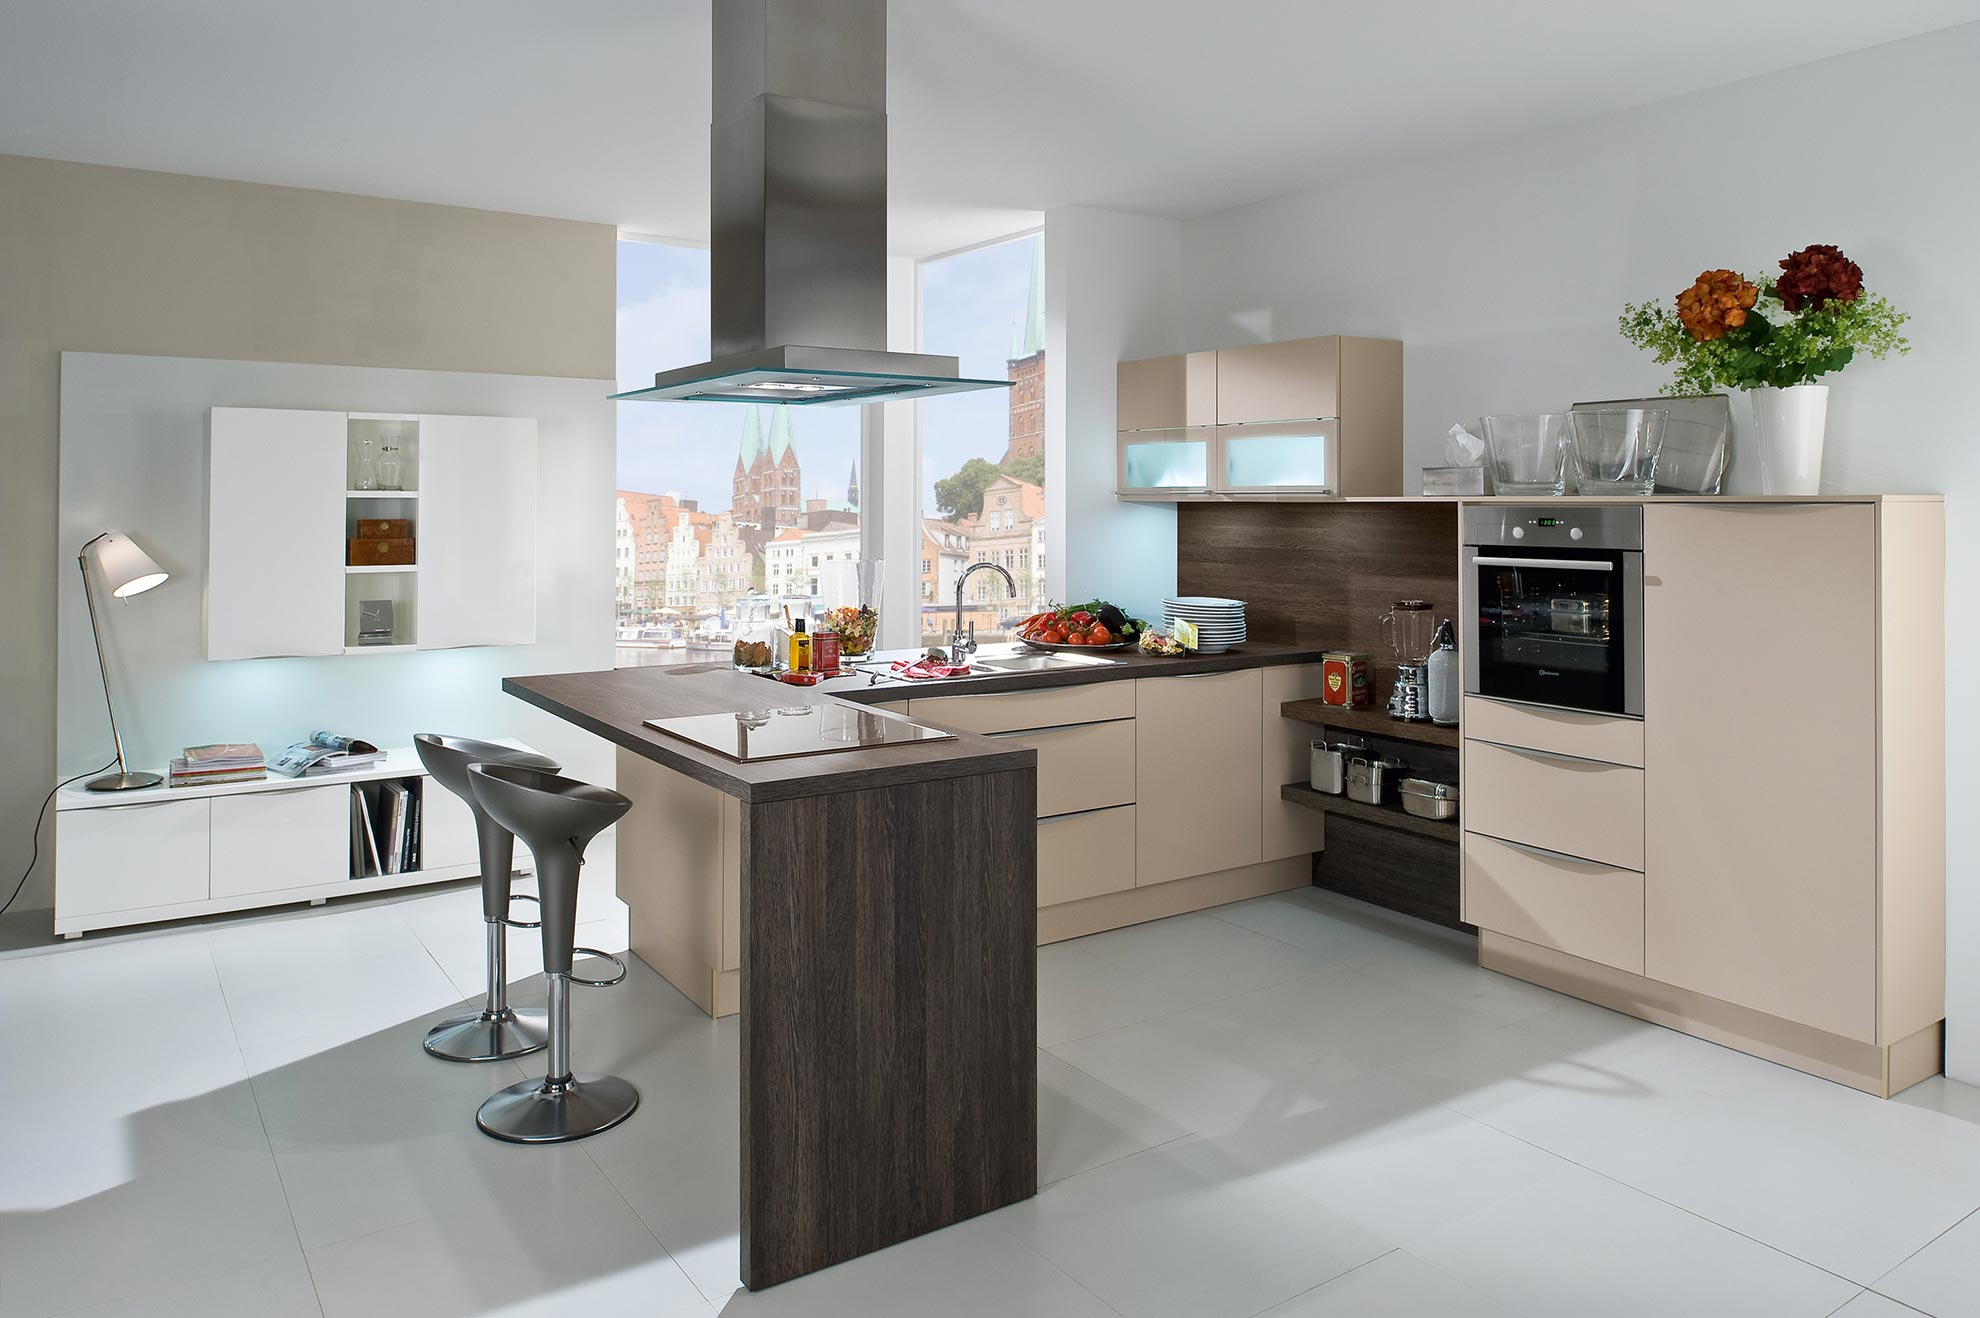 Kitchens bedford hertfordshire bedfordshire fitted for Decoration cuisine ouverte